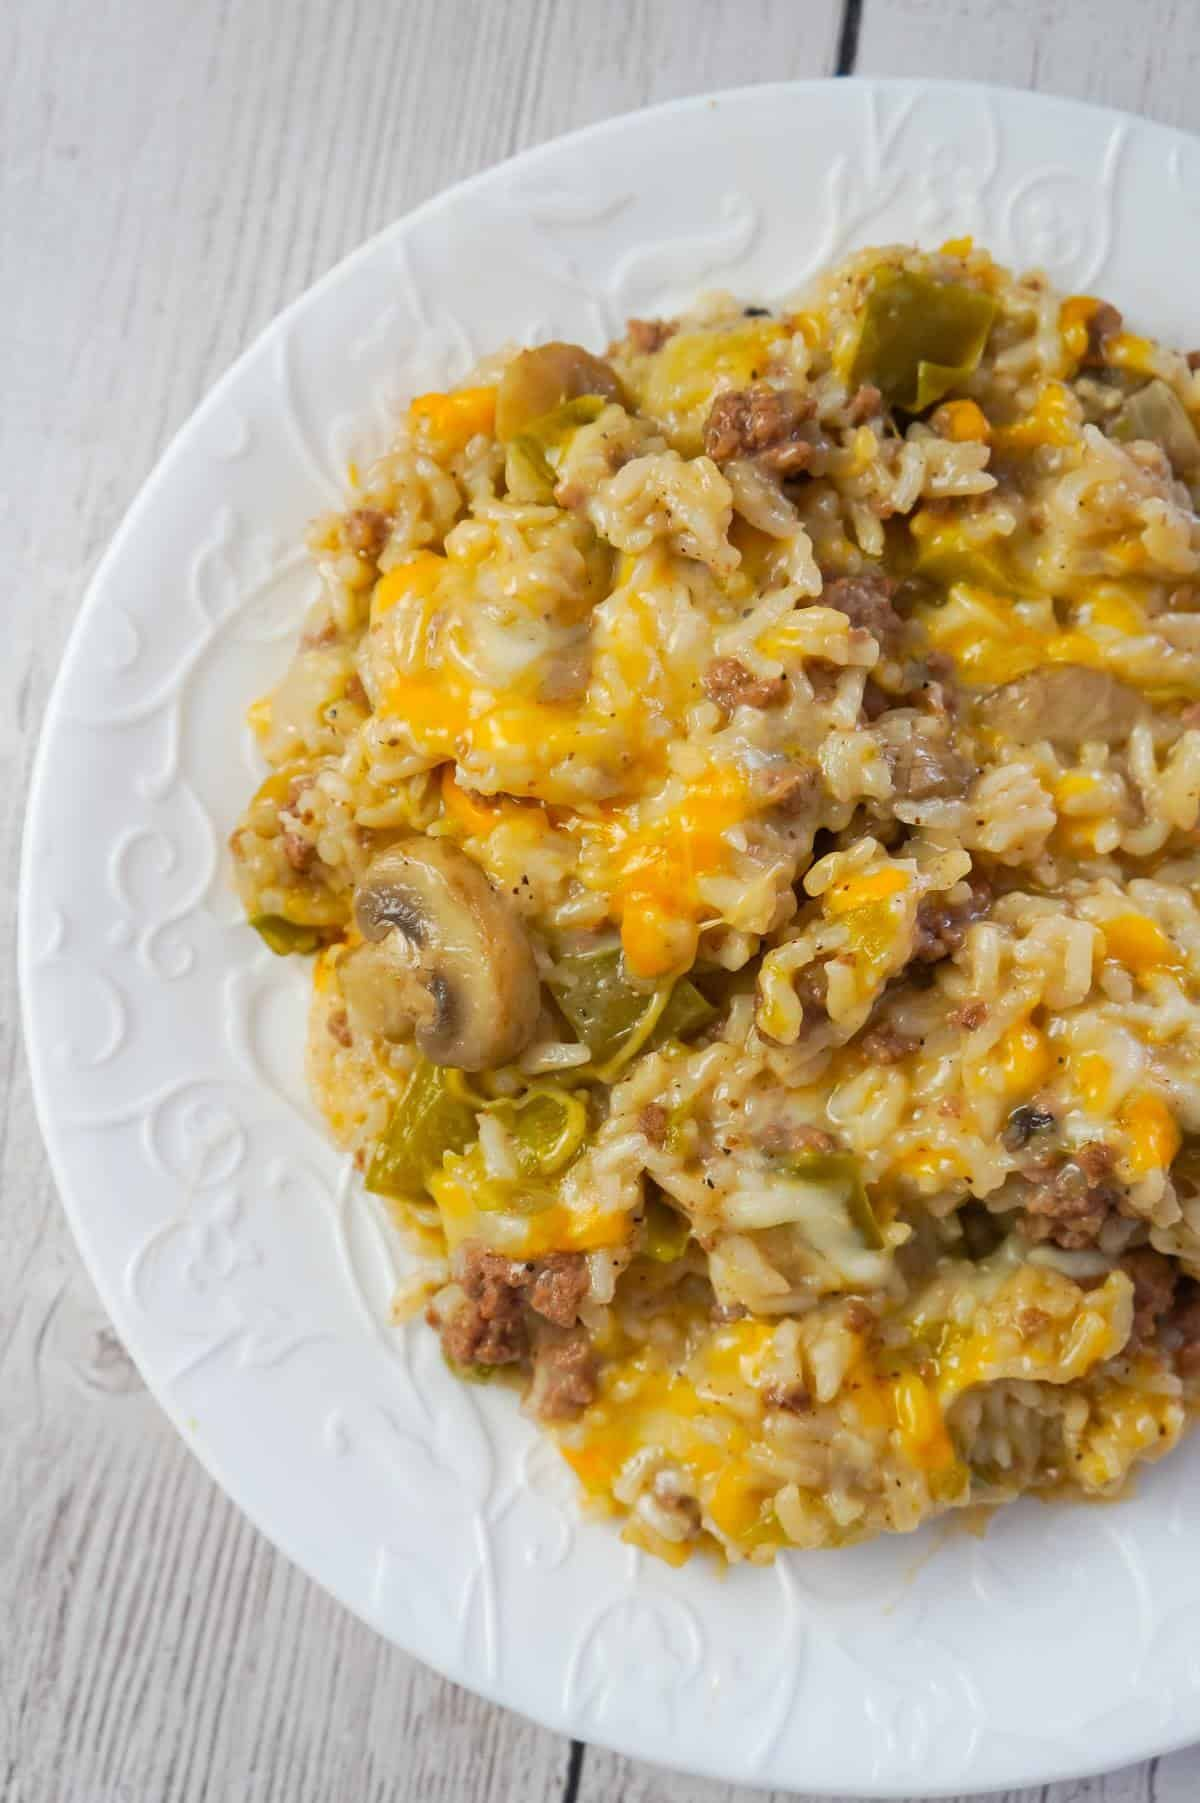 Instant Pot Philly Cheese Steak Ground Beef And Rice Is An Easy Ground Beef Dinner Rec In 2020 Cooking With Ground Beef Dinner With Ground Beef Beef Recipes For Dinner